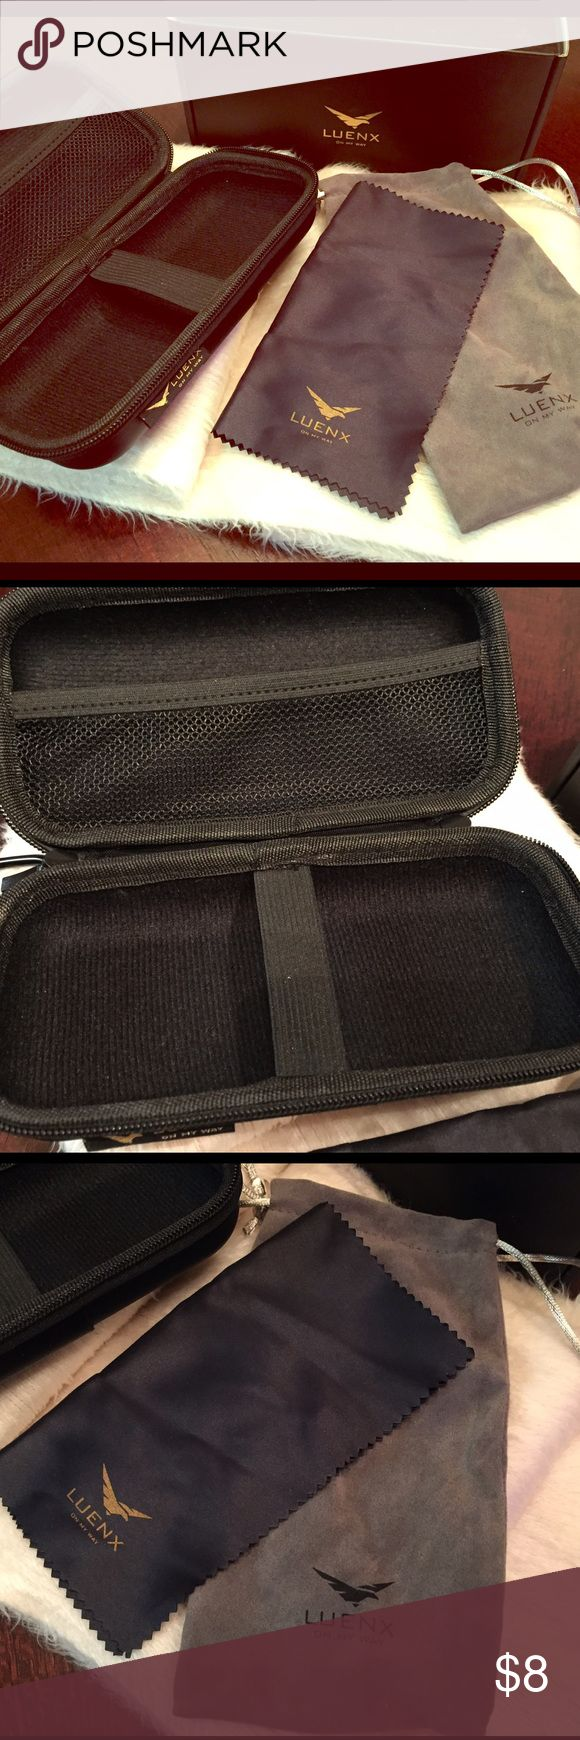 "Sunglasses Case Luenx Sunglasses Case Luenx, includes case, bag for glasses & wipe for glasses.  Never been used but does not include ""sunglasses."" Has hook to hook onto backpack or any other bag. luenx Accessories Glasses"